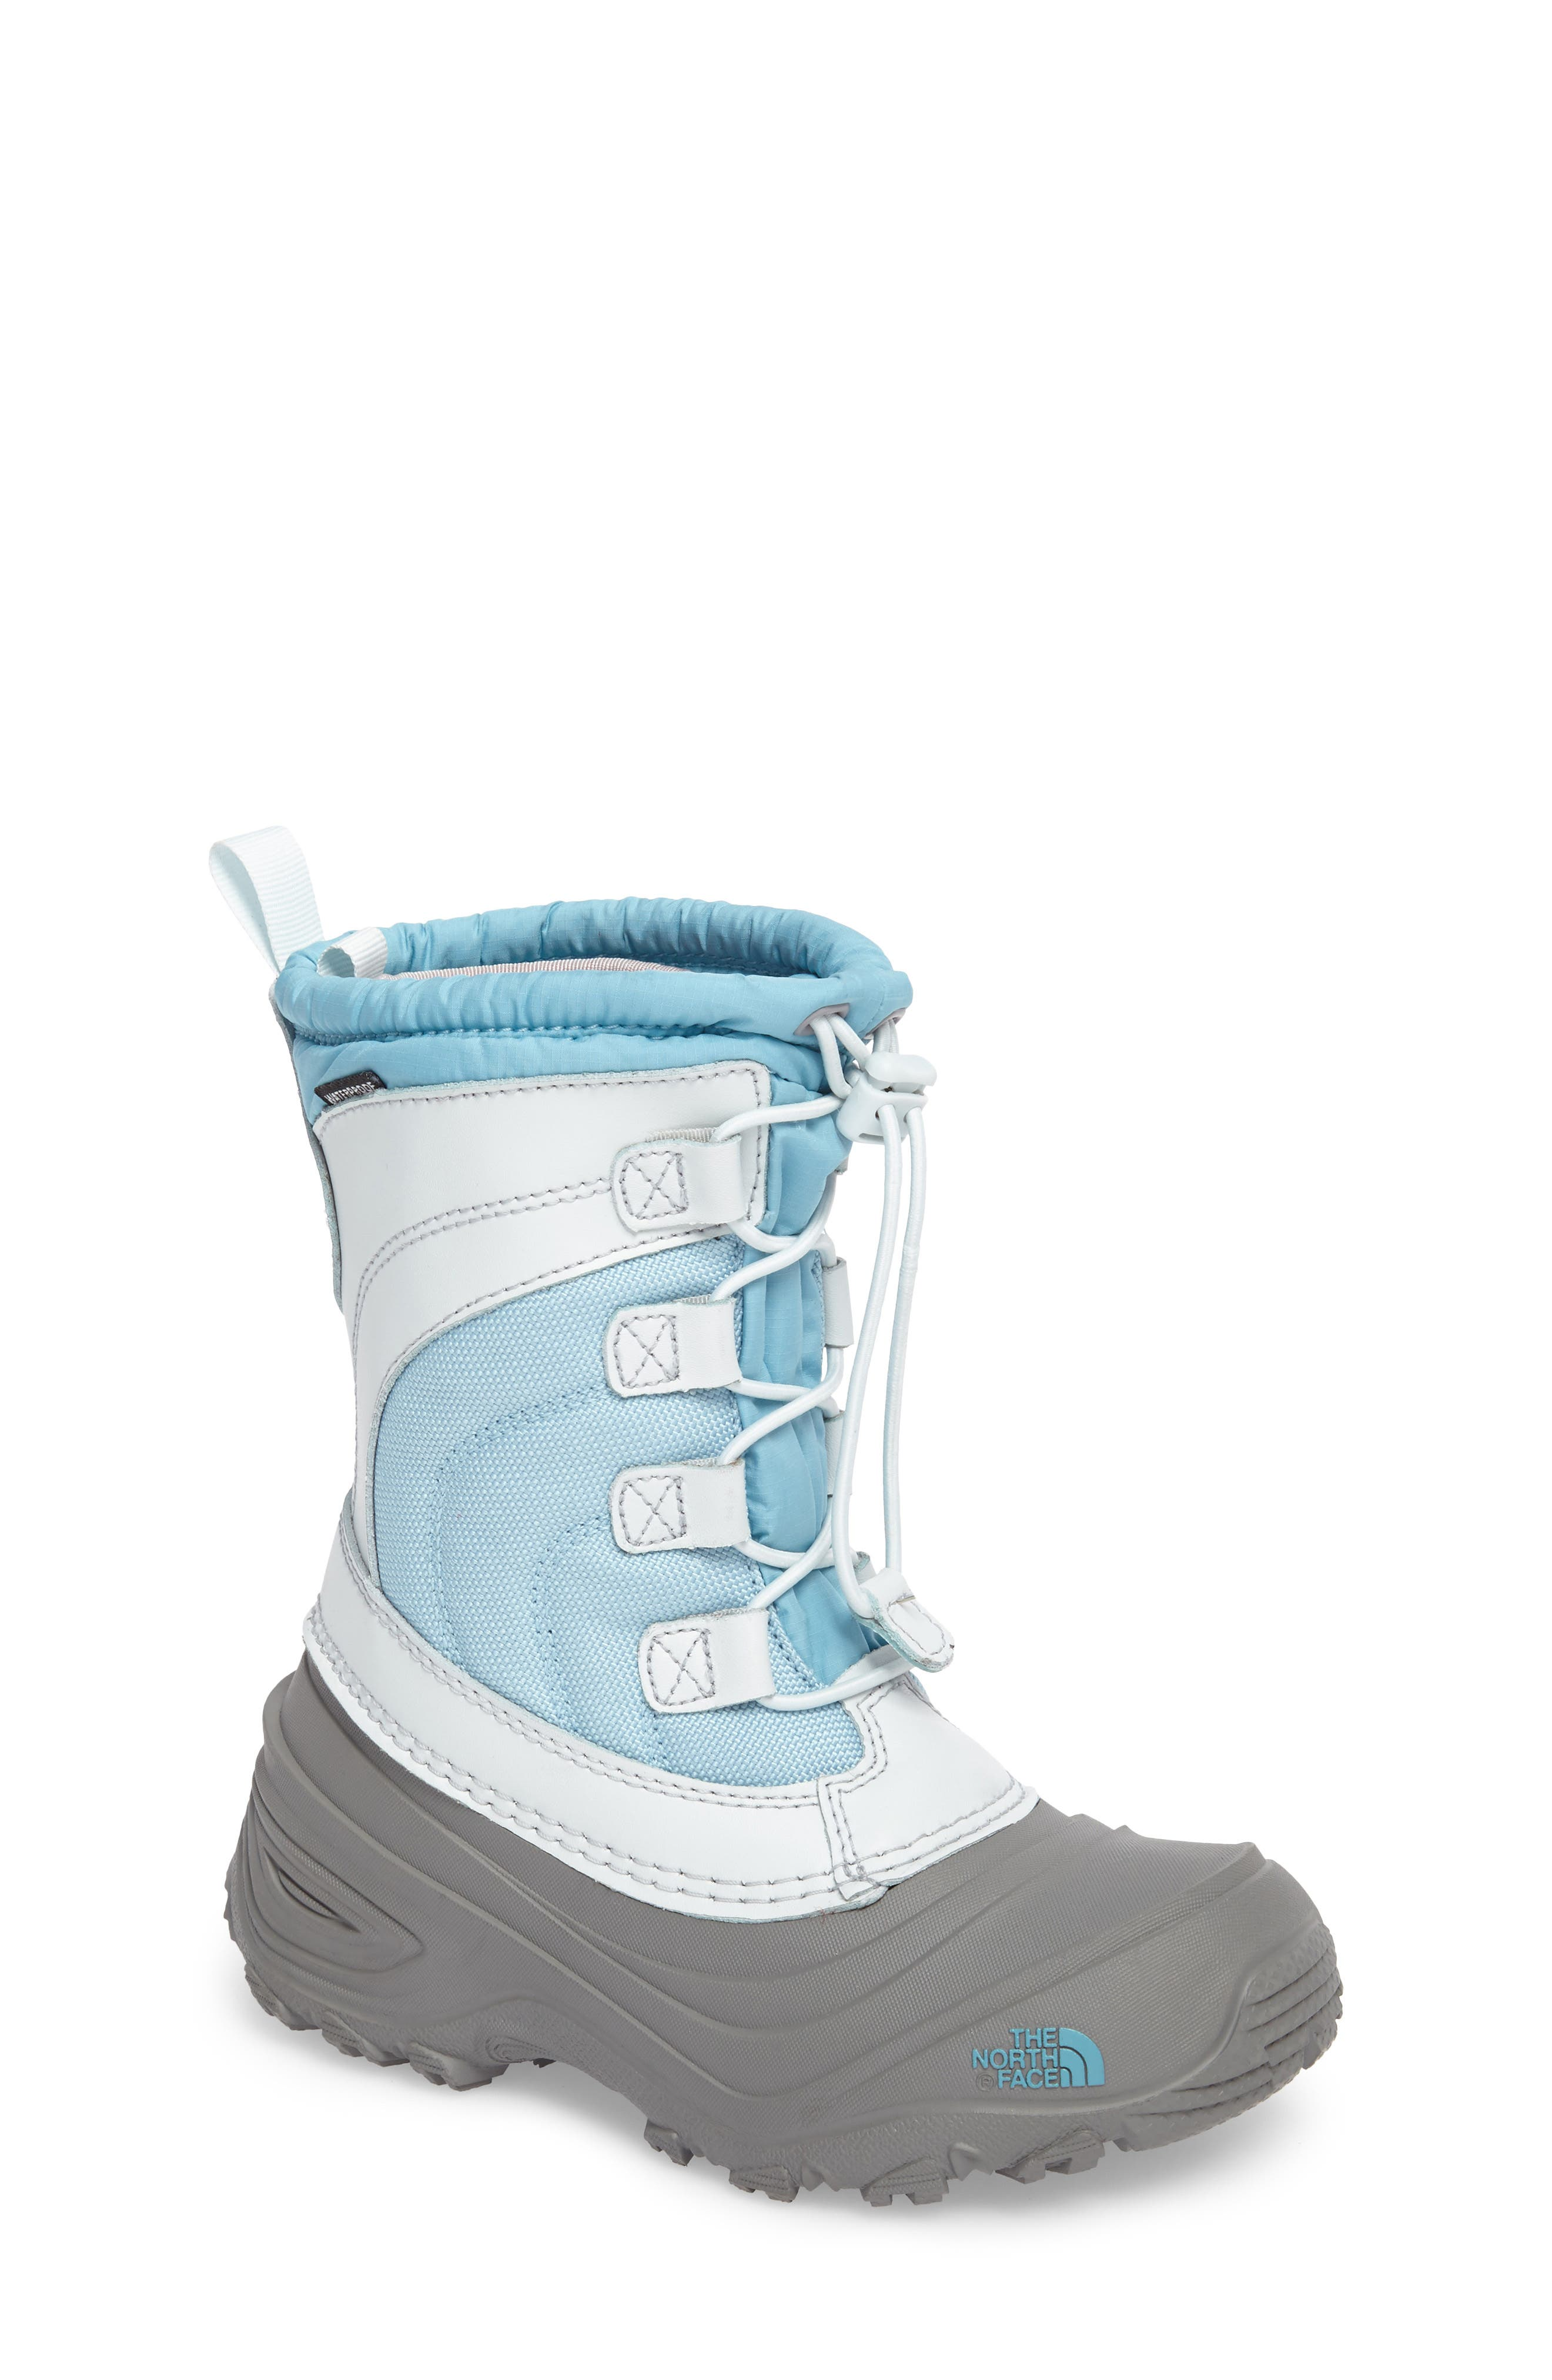 Alpenglow IV Waterproof Insulated Winter Boot,                             Main thumbnail 1, color,                             400